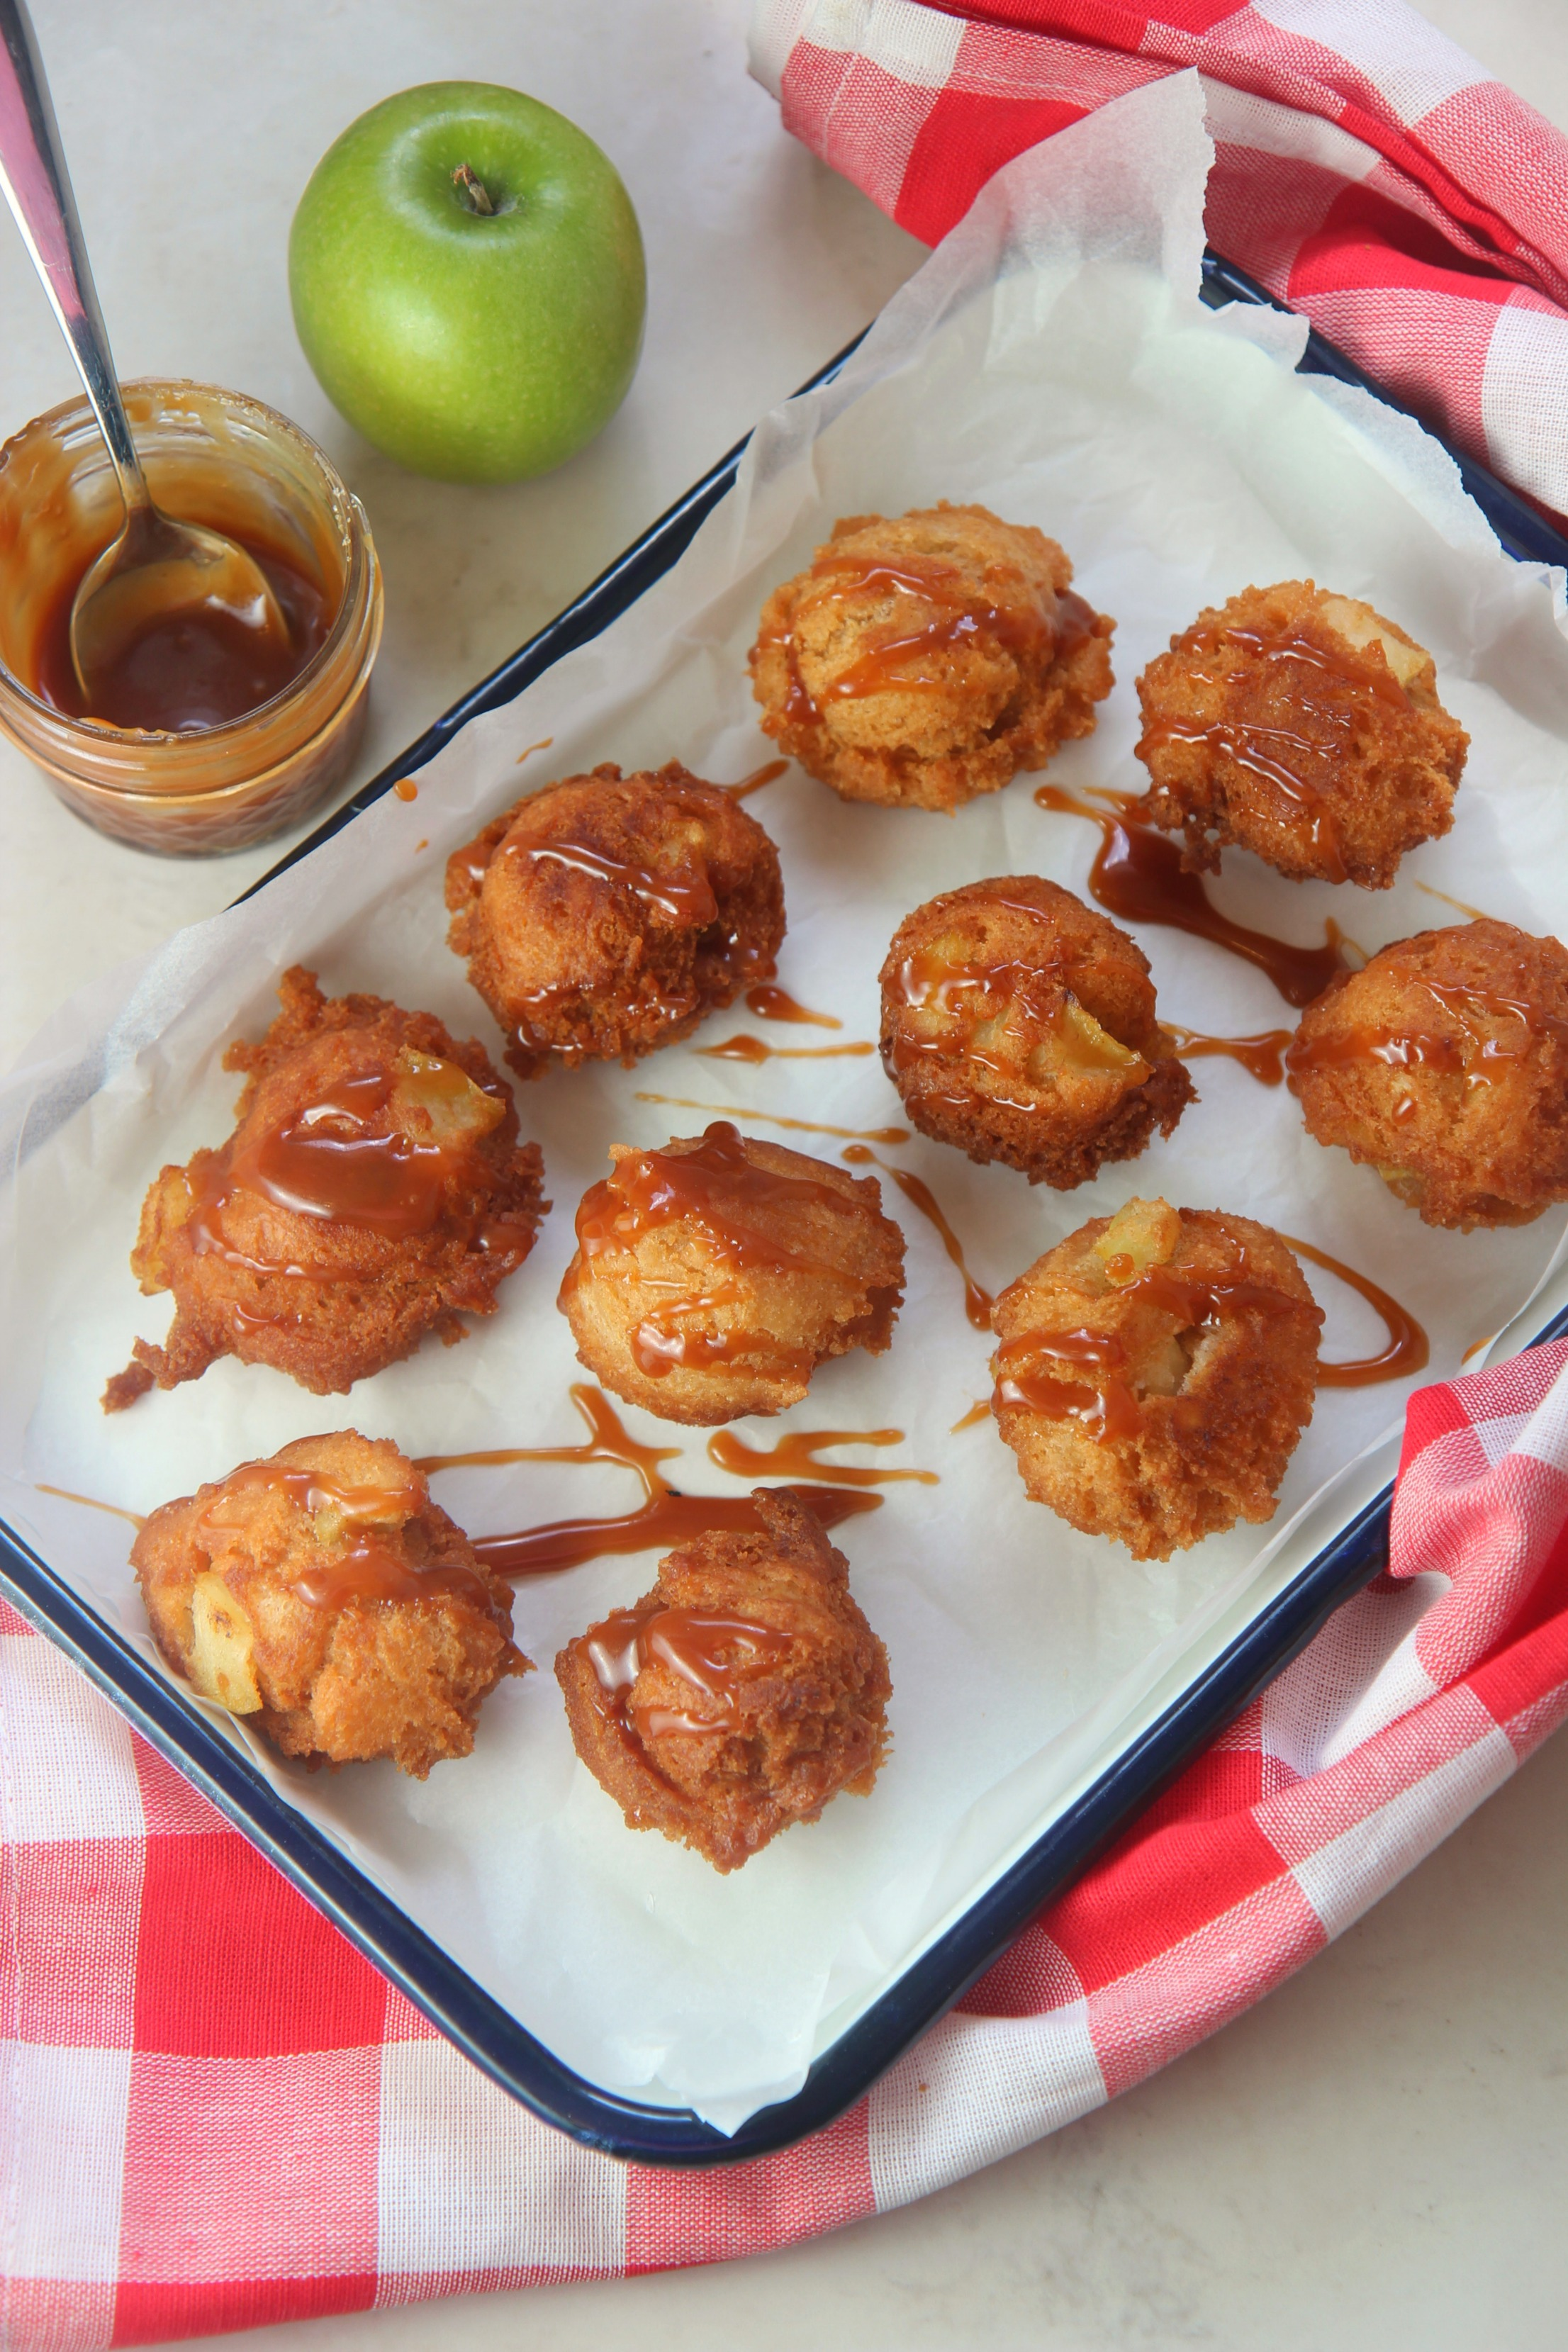 These deep fried apple fritters are a perfect fall treat